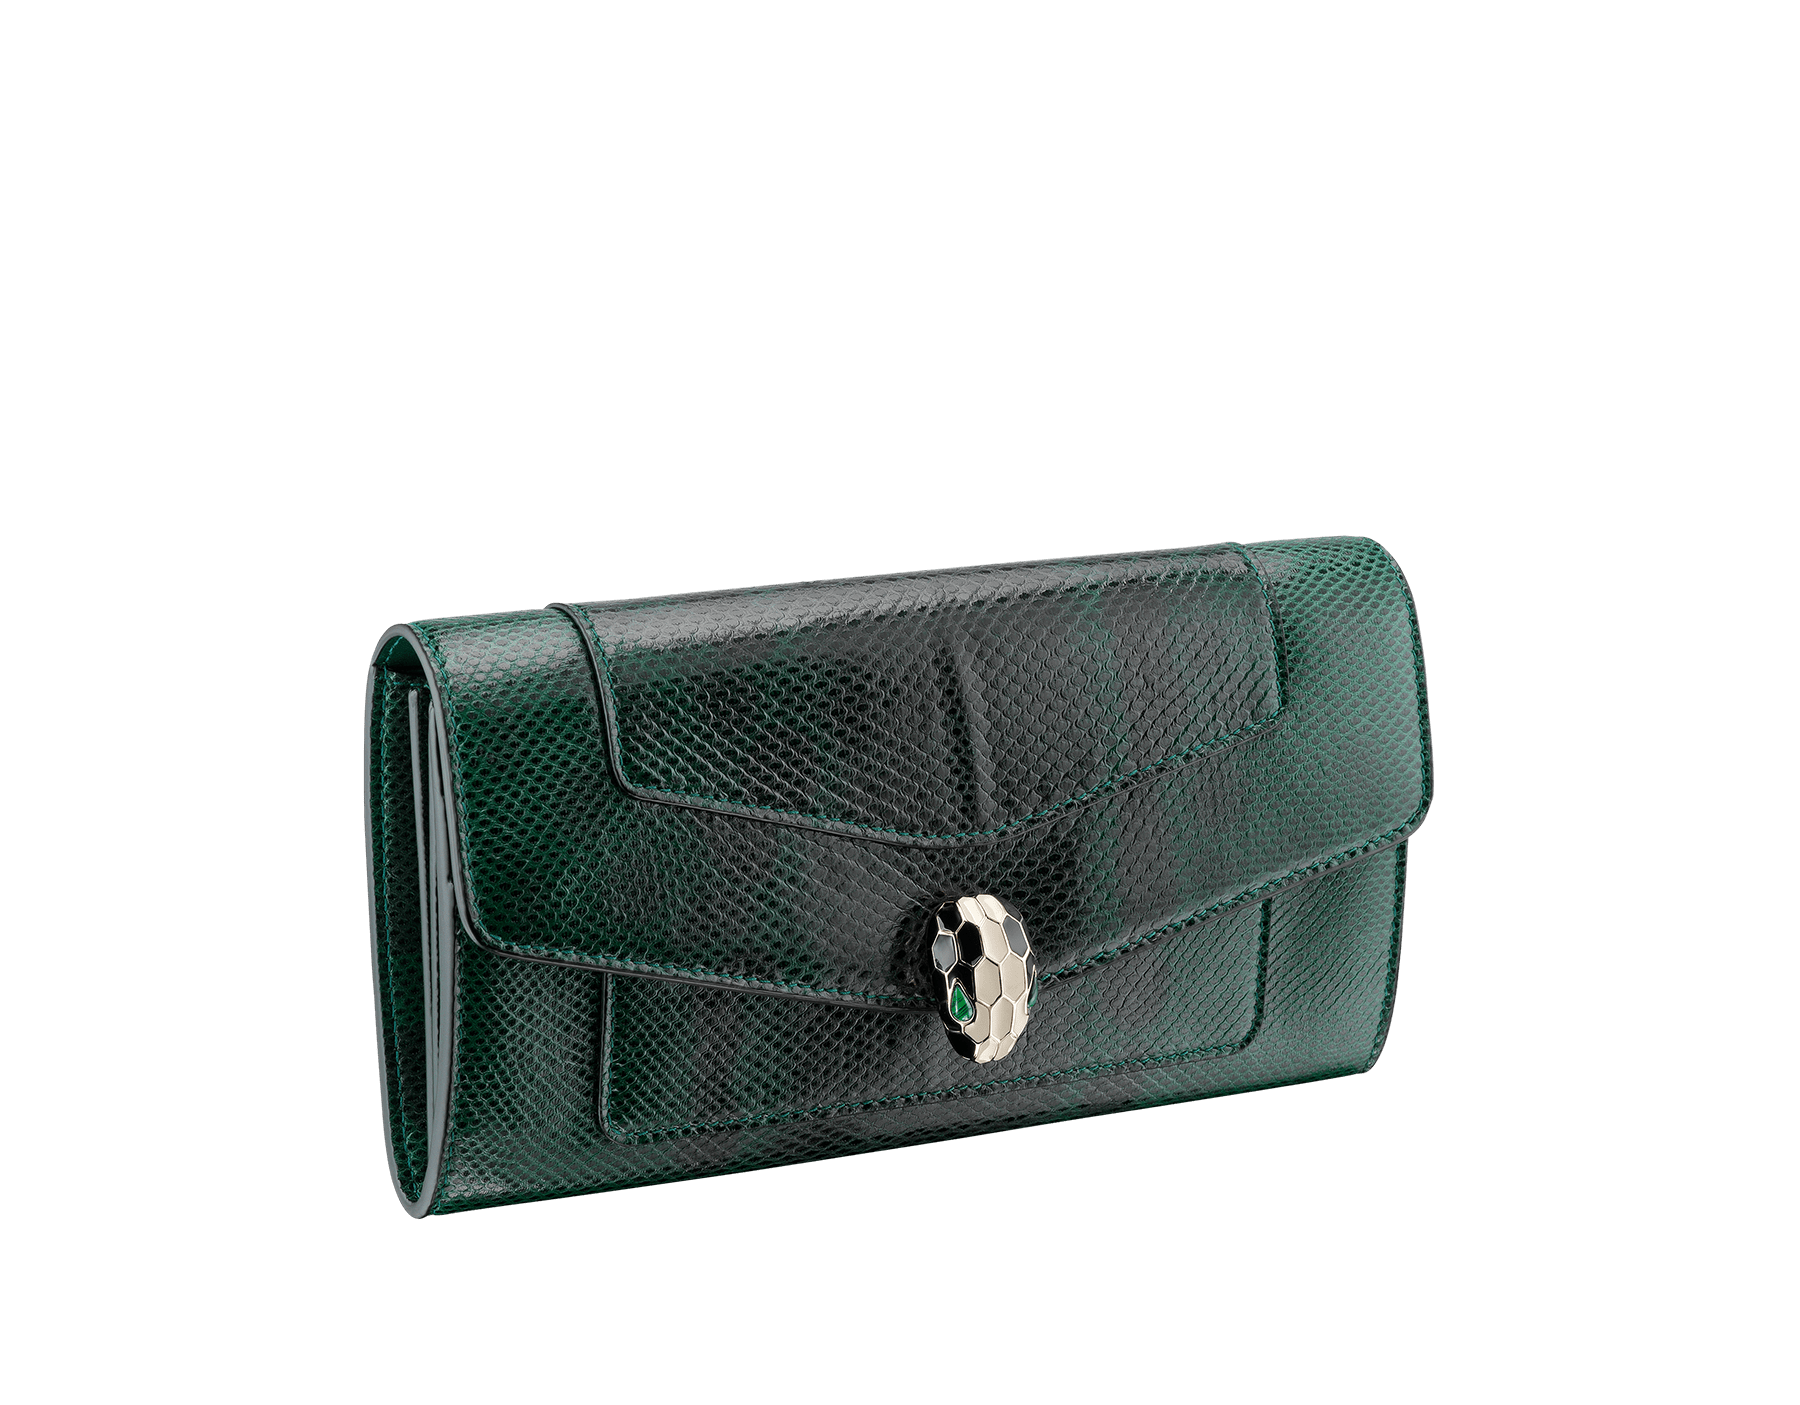 Wallet pochette in forest emerald shiny karung skin and forest emerald calf leather with tourquoise nappa lining. Brass light gold plated hardware. Serpenti head stud closure in black and white enamel with eyes in green malachite. 283820 image 1